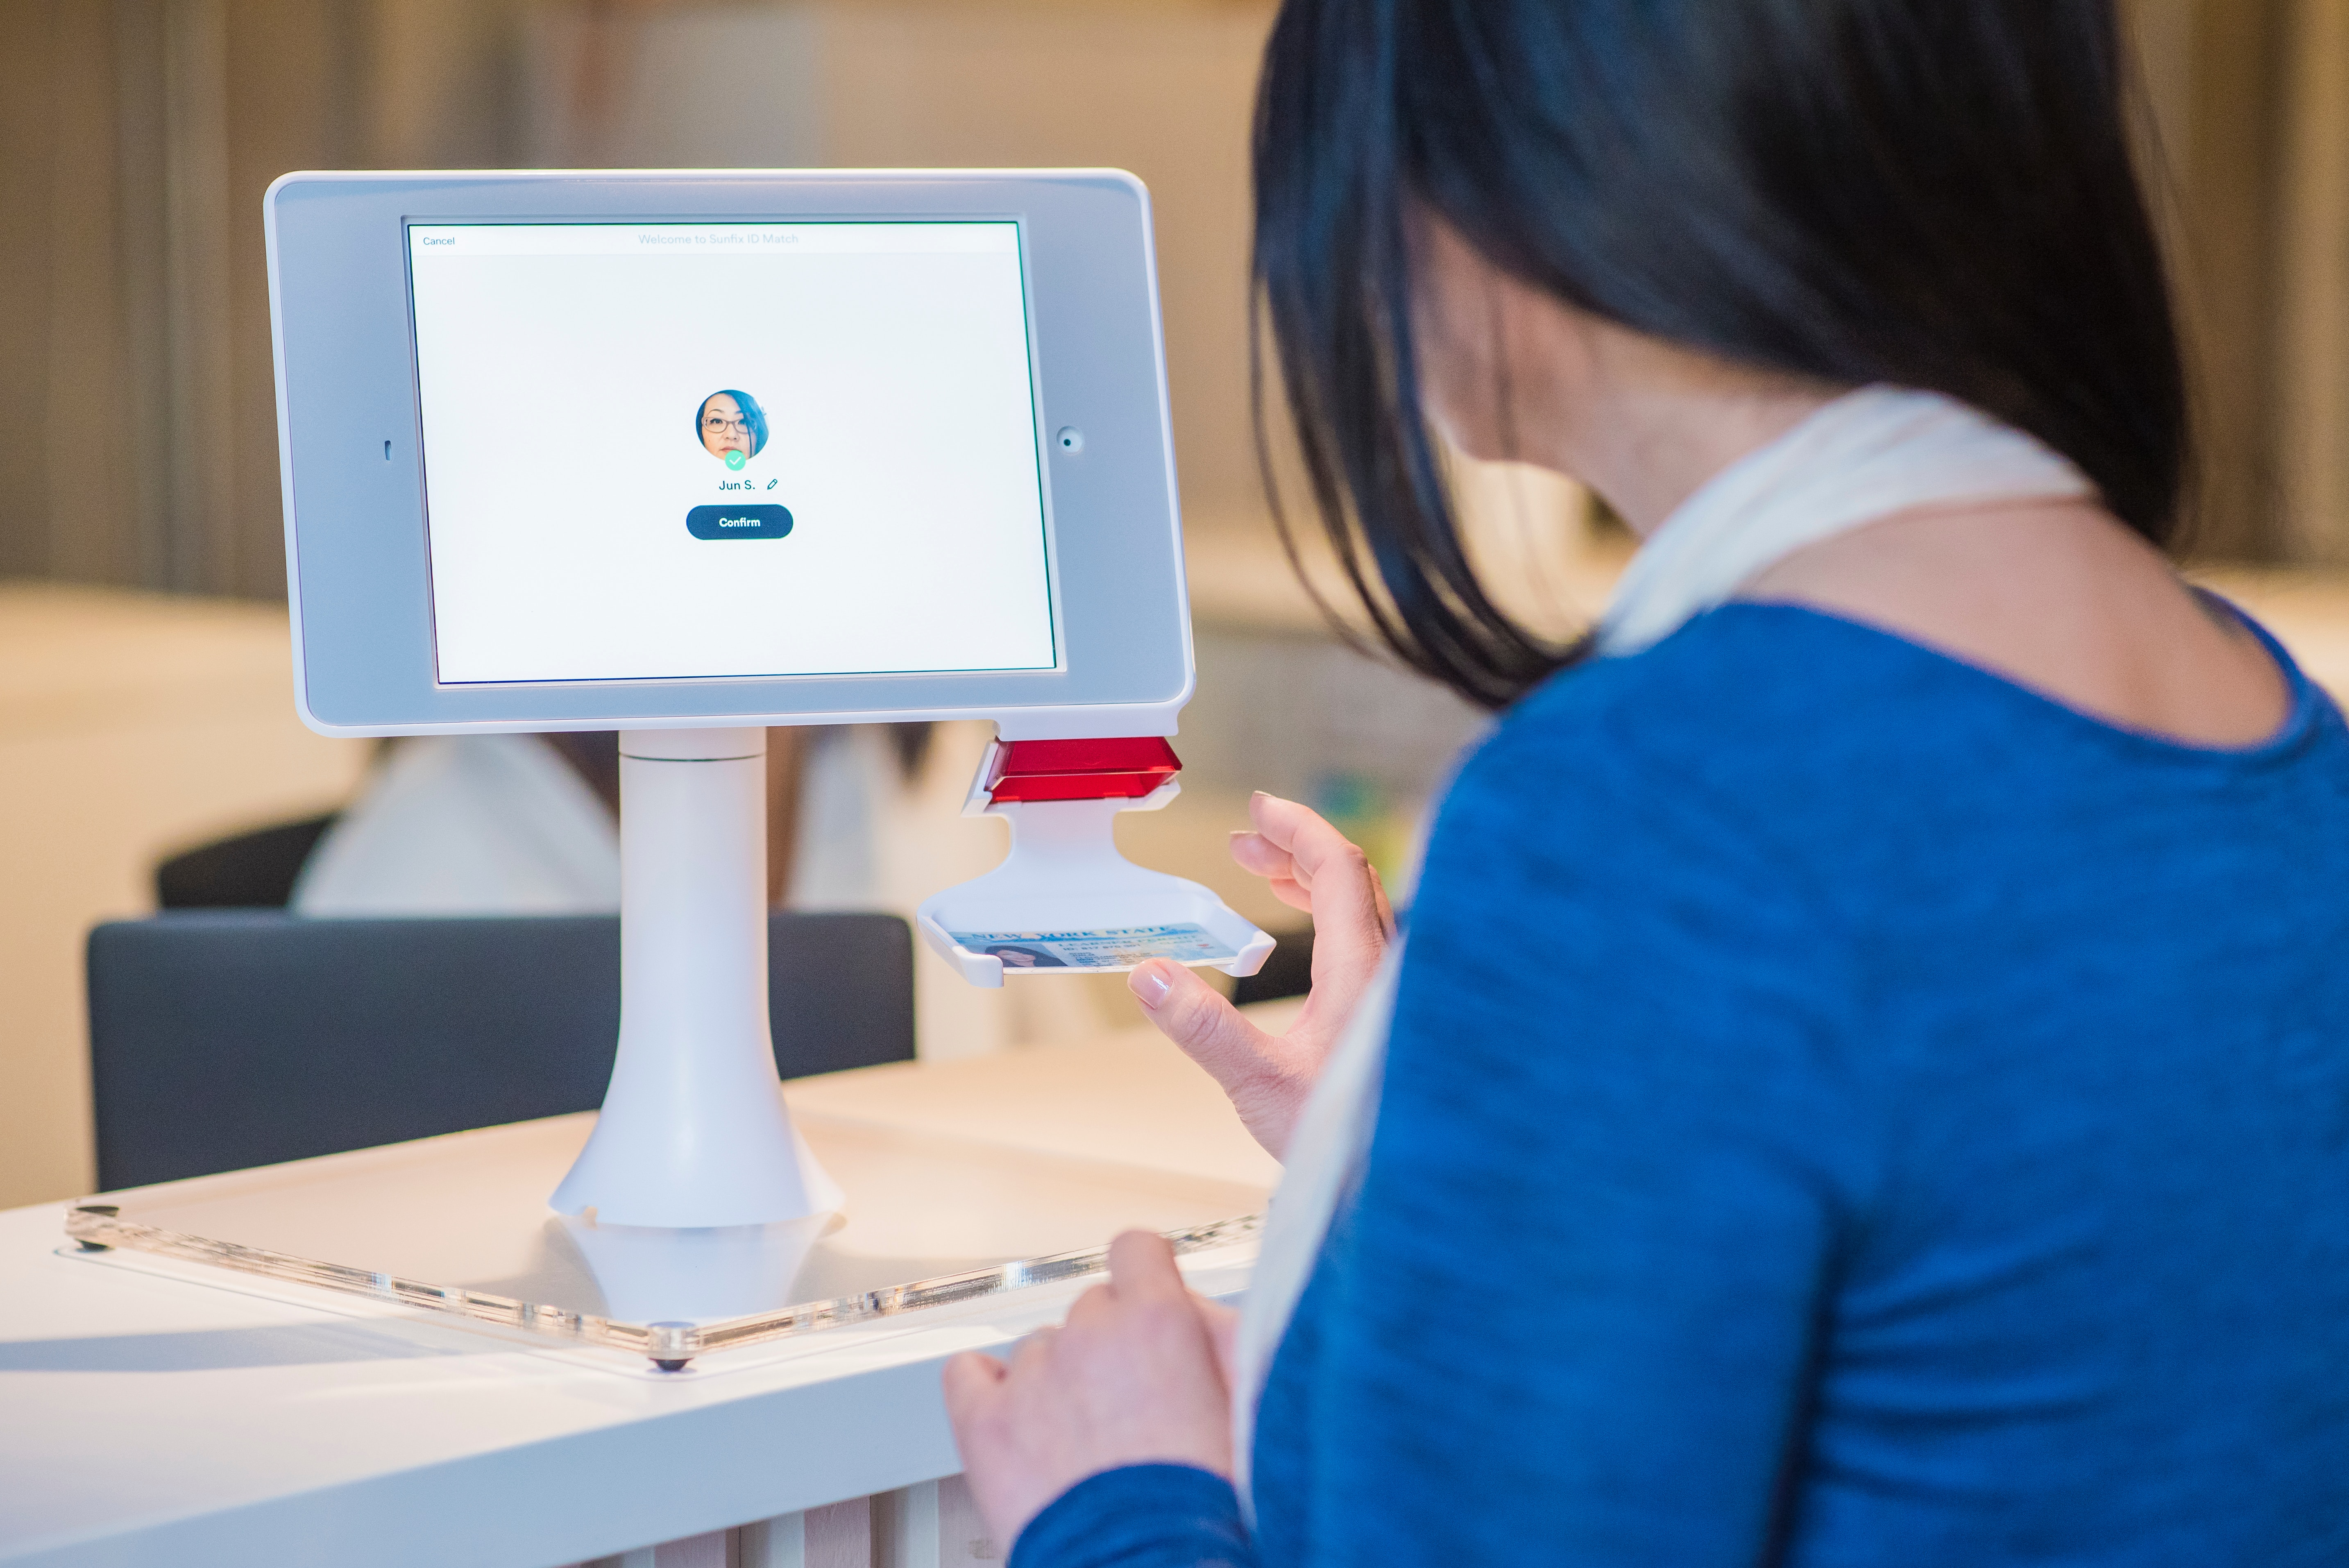 Deploy self check-in kiosks at your hotel to save costs